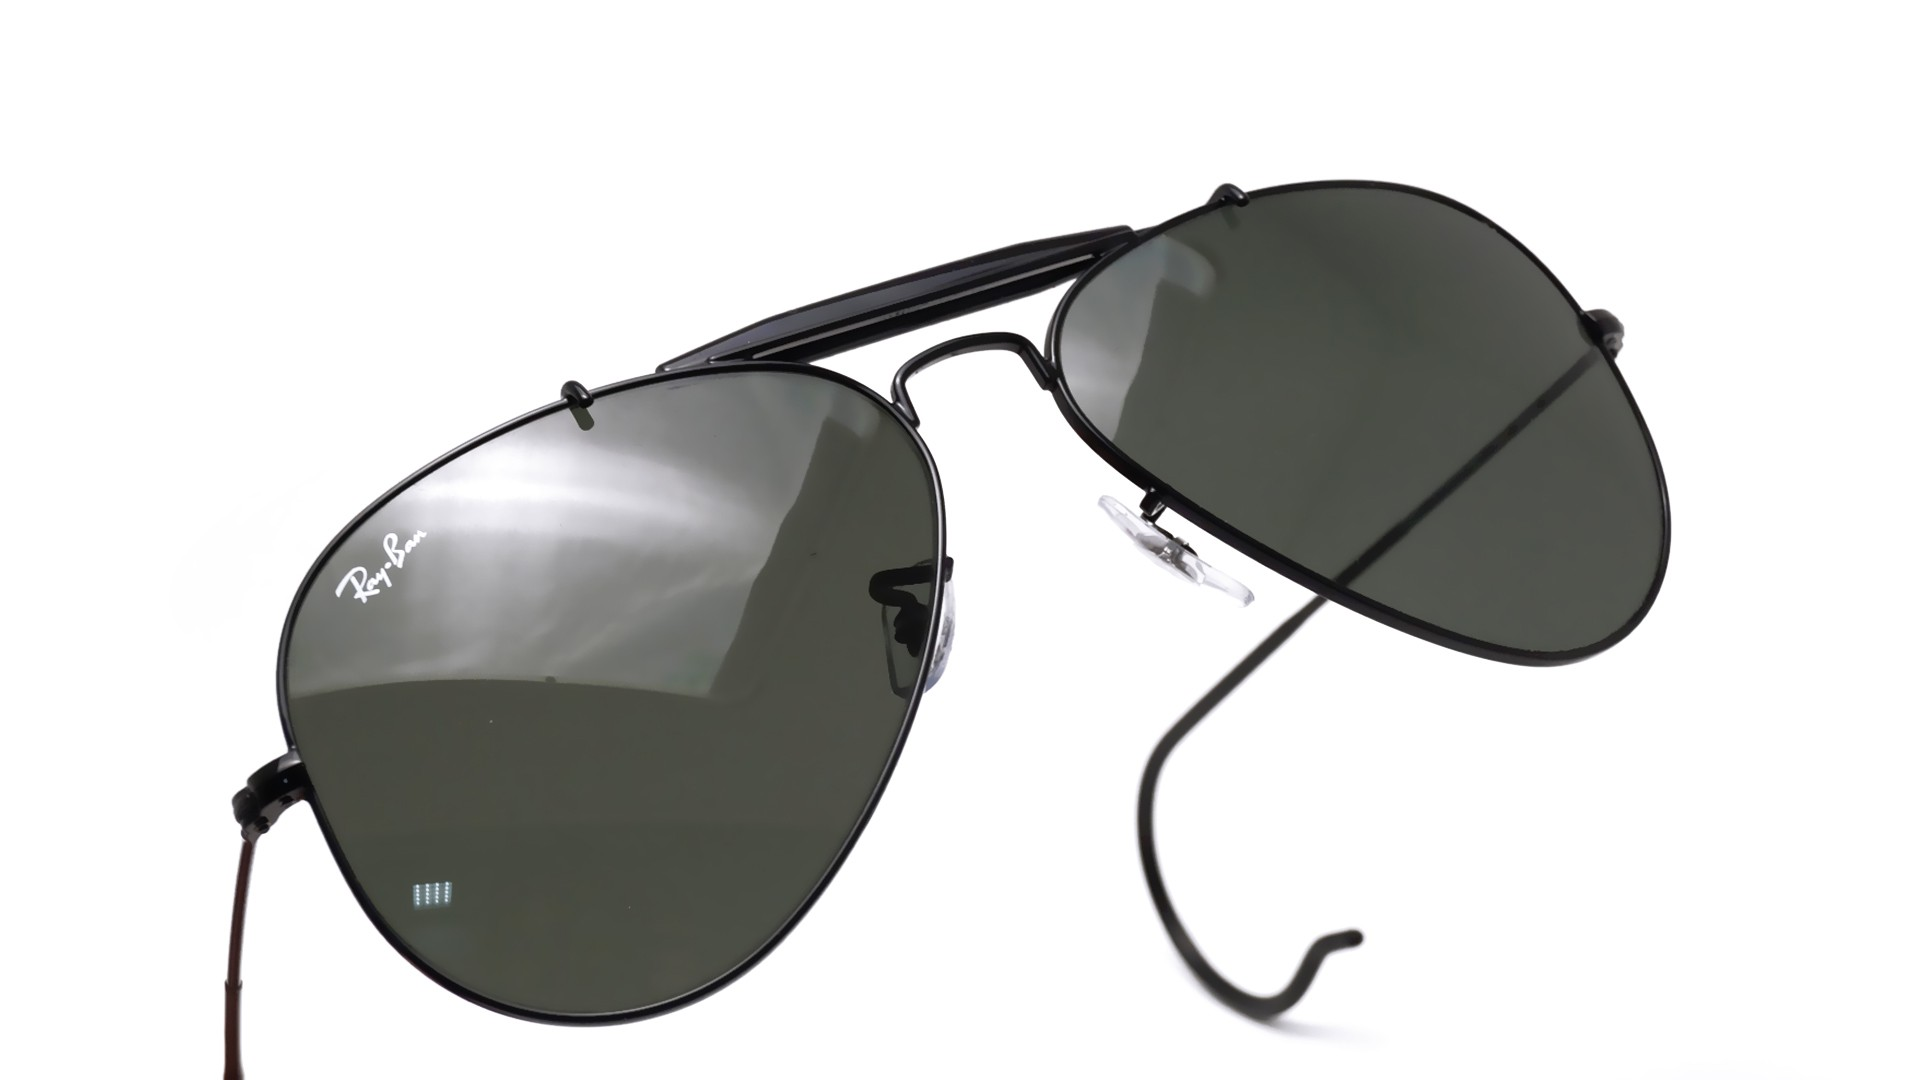 74a725e955 Ray Ban Rb3030 62mm « Heritage Malta